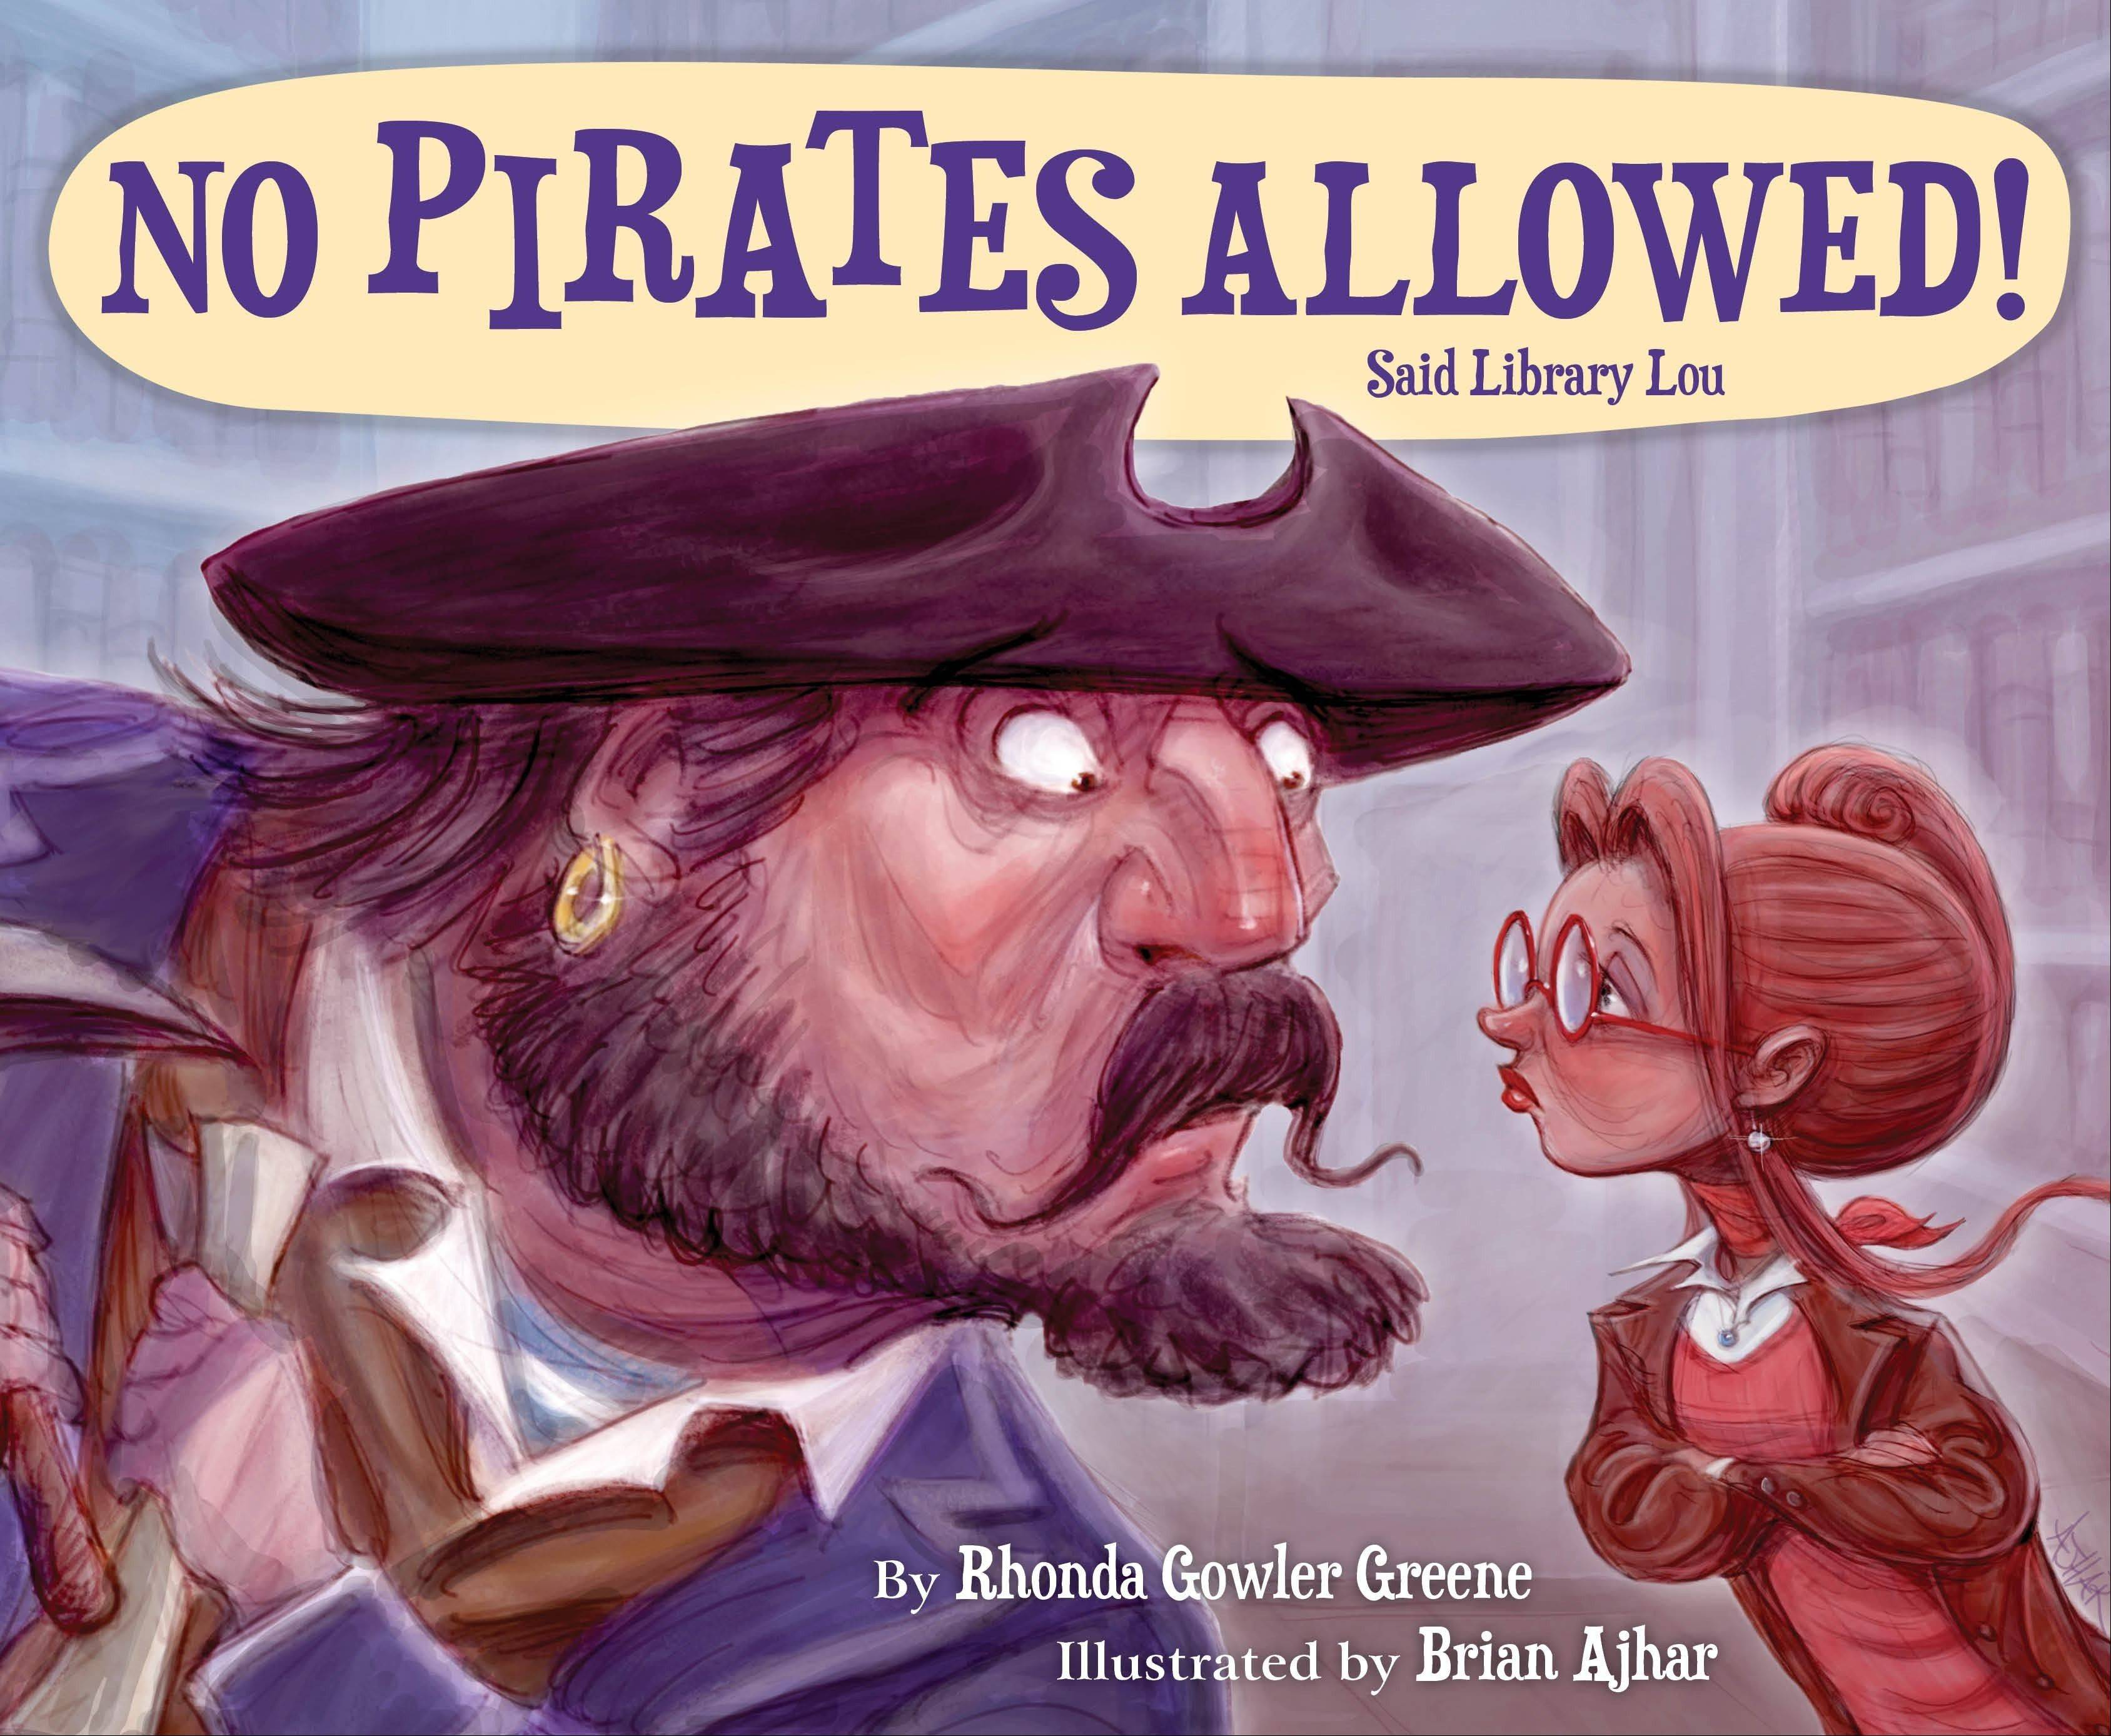 """NO PIRATES ALLOWED! Said Library Lou"" by Rhonda Gowler Greene, illustrated by Brian Ajhar (Sleeping Bear Press 2013), $15.95, 40 pages."